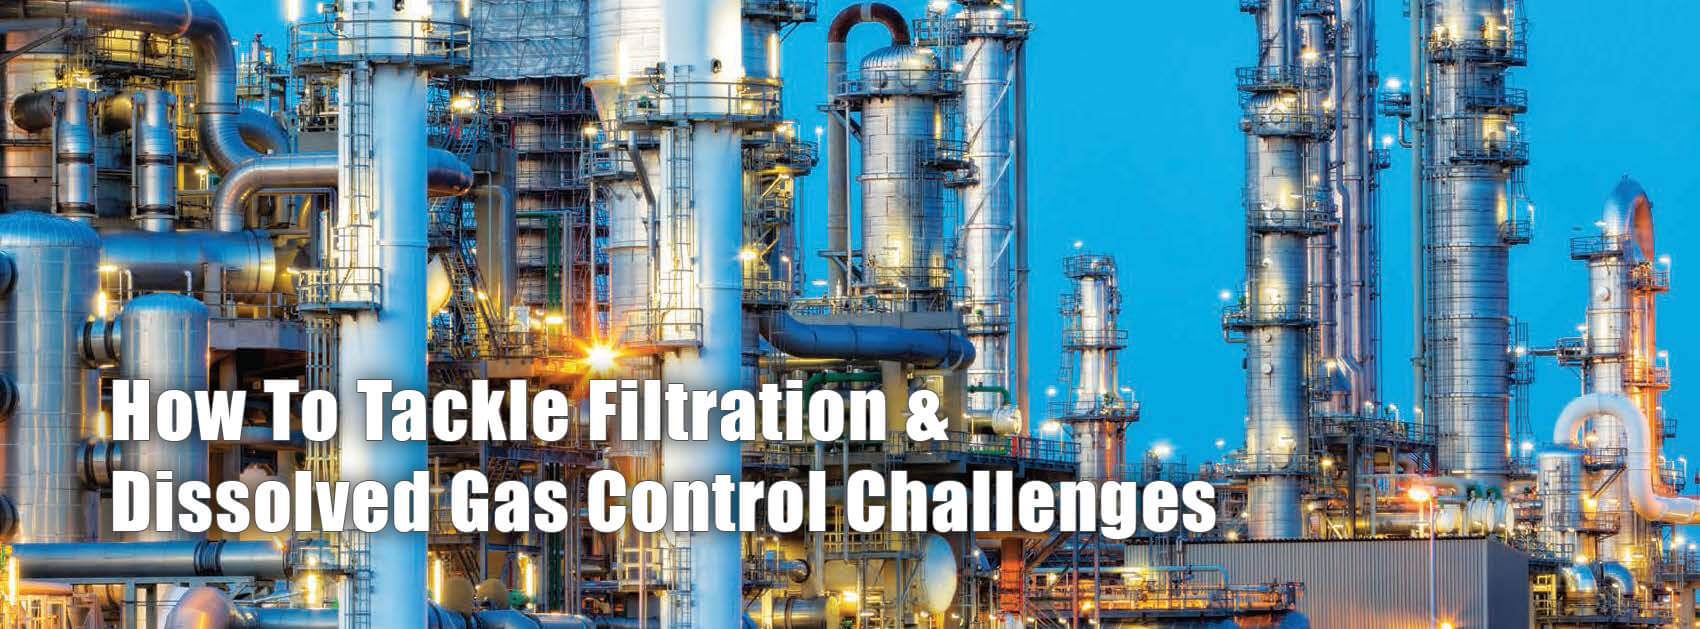 3M Filtration and Separation provides filtration solutions